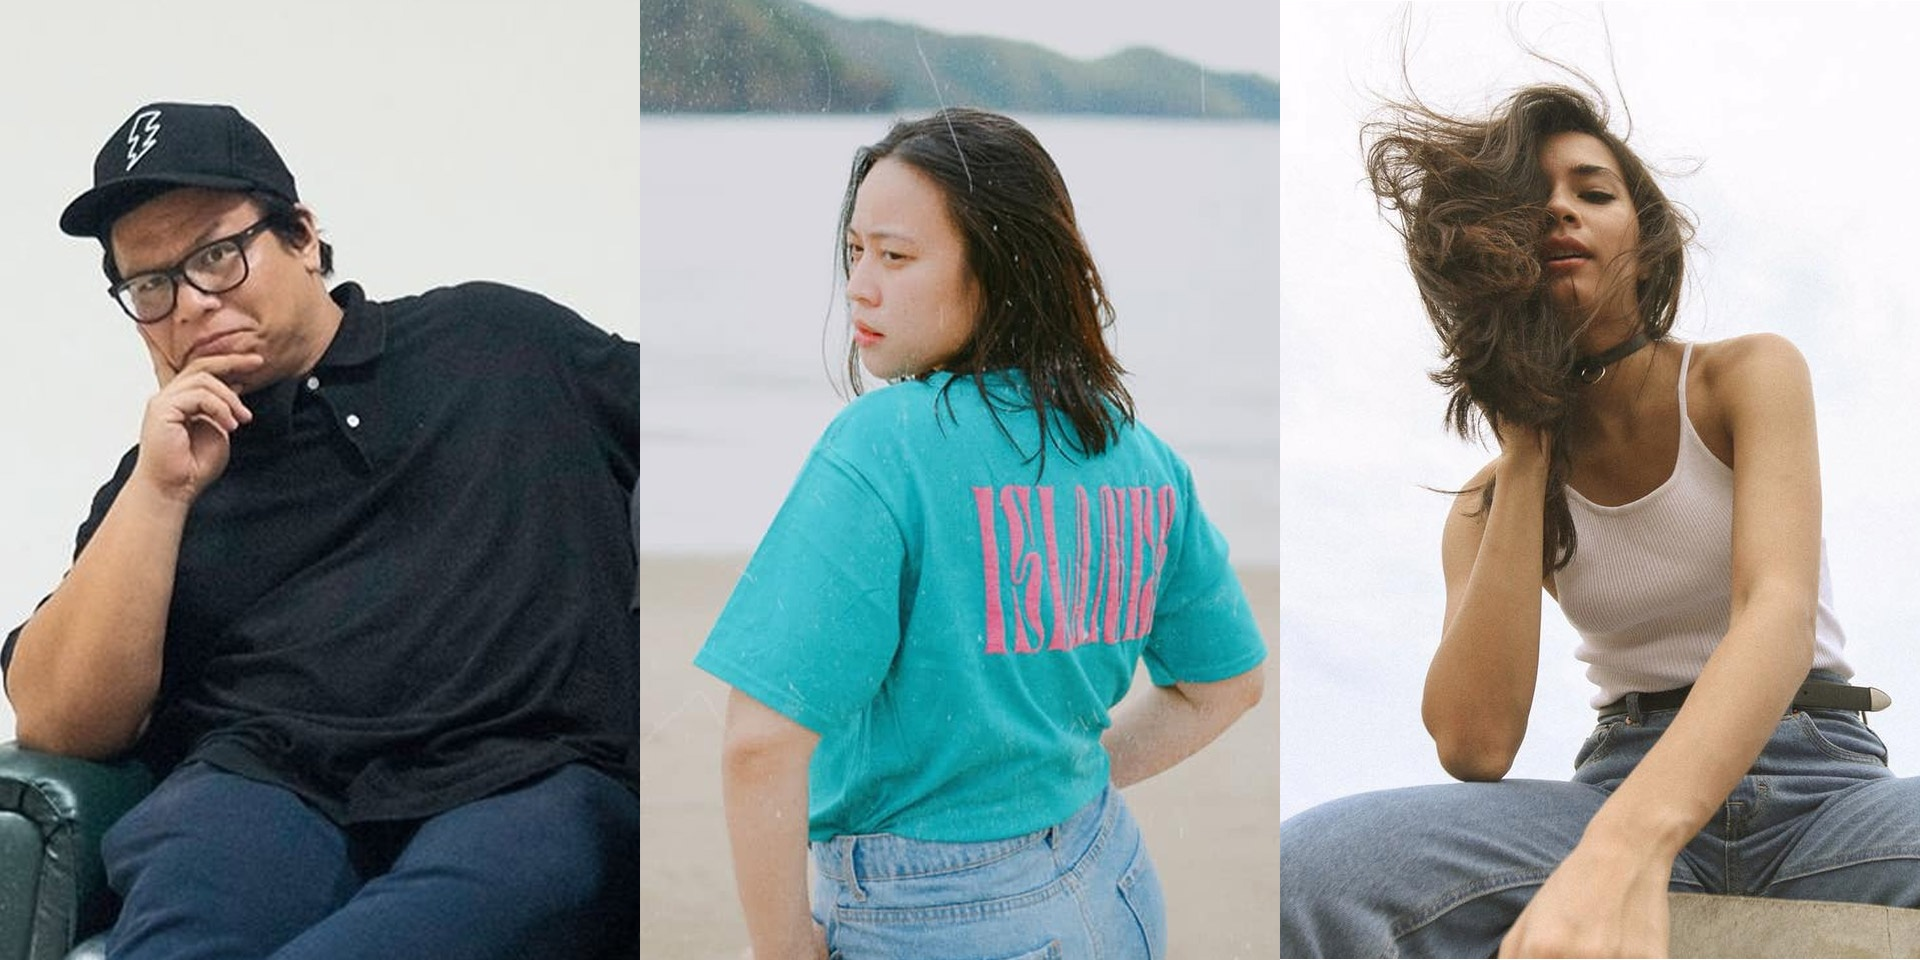 Jazz Nicolas, Reese Lansangan, and Valentina Ploy to perform at Indie Manila's first edition of SUBDUED Online